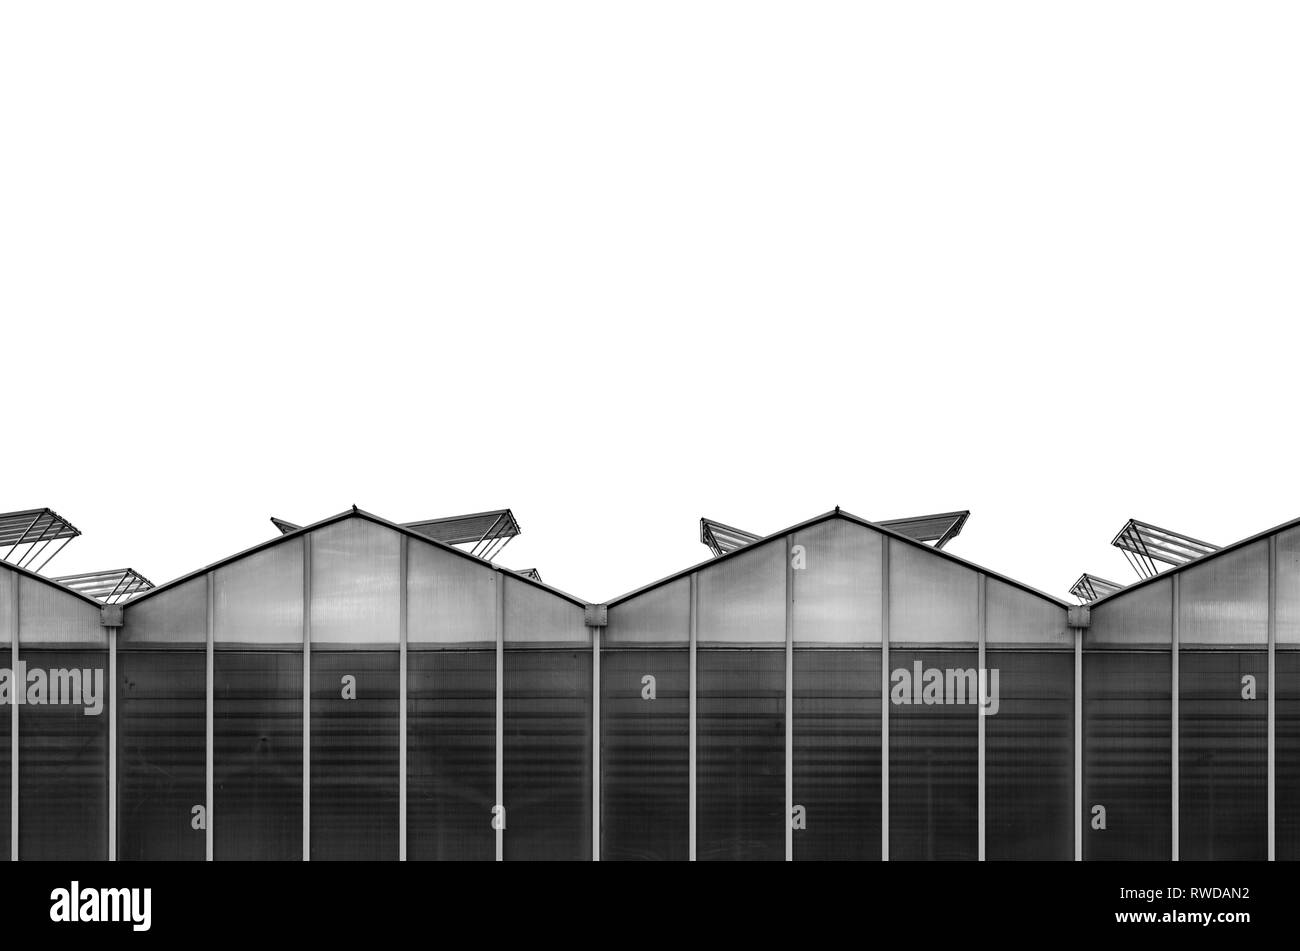 Large Industrial Greenhouse. Black and White Image of the Glass Greenhouse Facade with Open Windows on the Roof Stock Photo